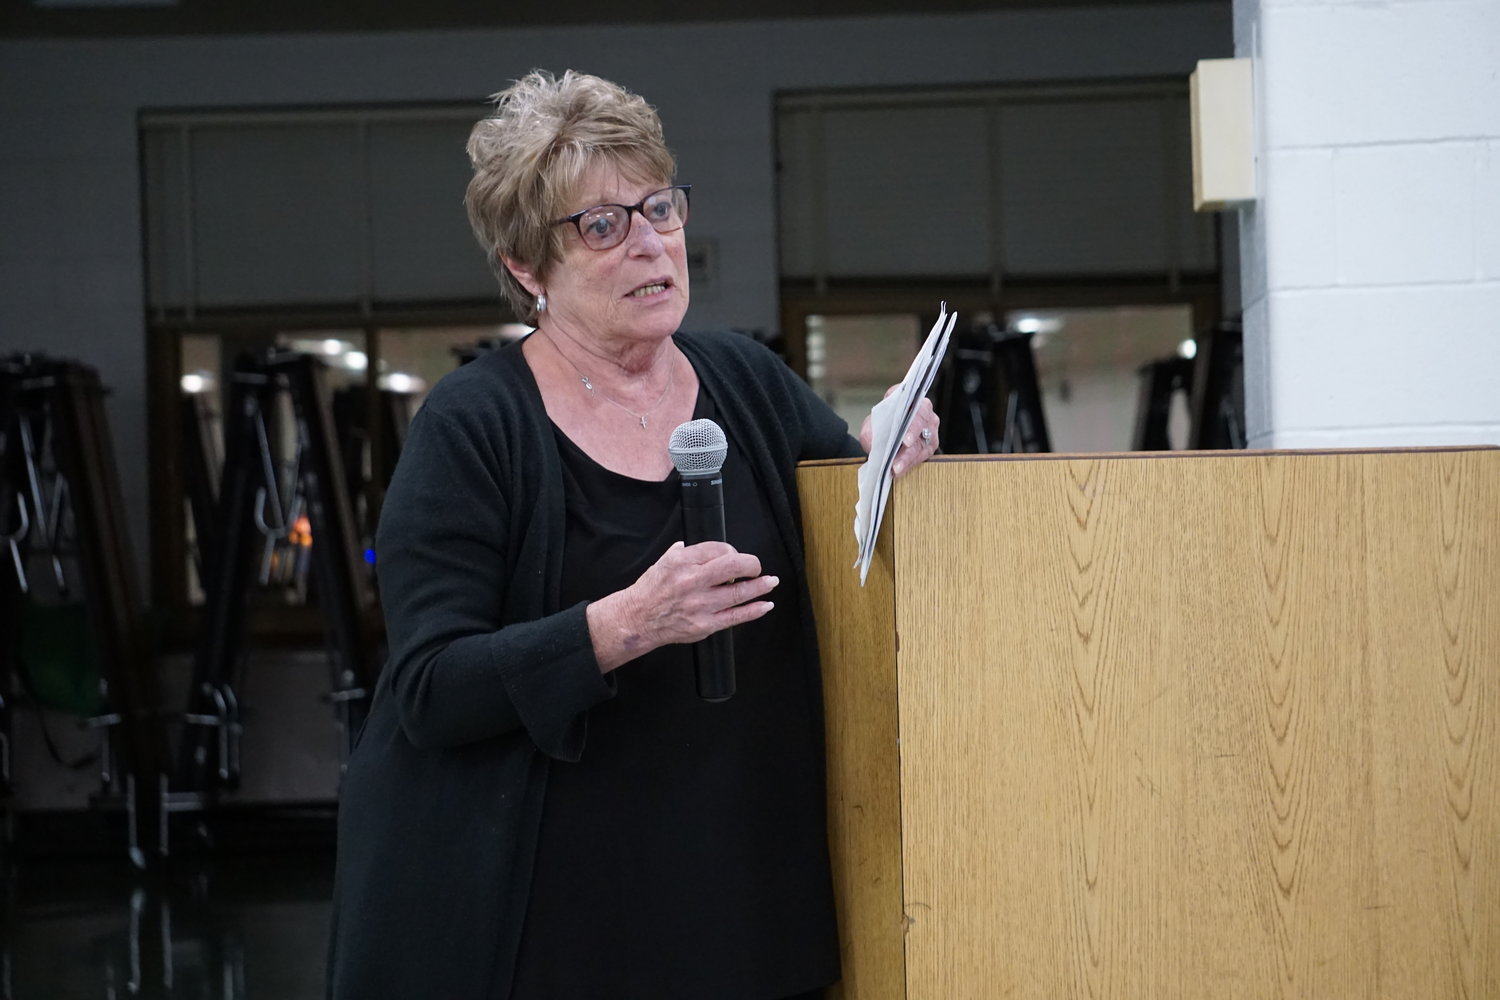 Valley Streamer Karin Longo pleaded with the Central High School District Board of Education on Aug. 27, asking them to provide late-bus service to her grandson who attends private school. His mother died of breast cancer in June.